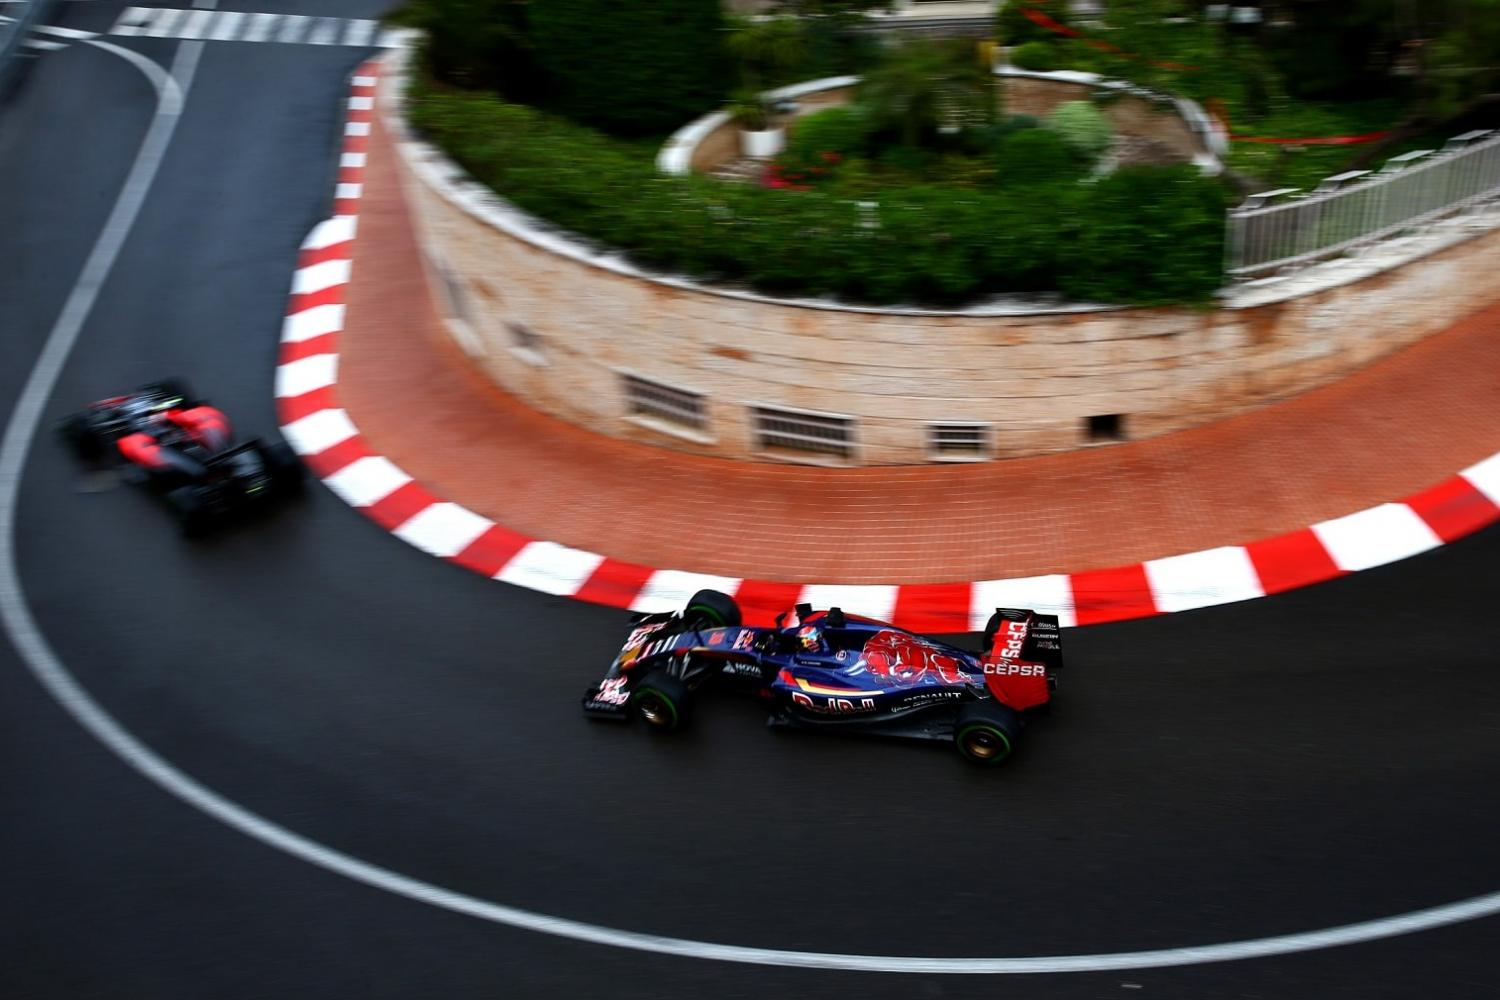 Monaco Grand Prix ticket packages